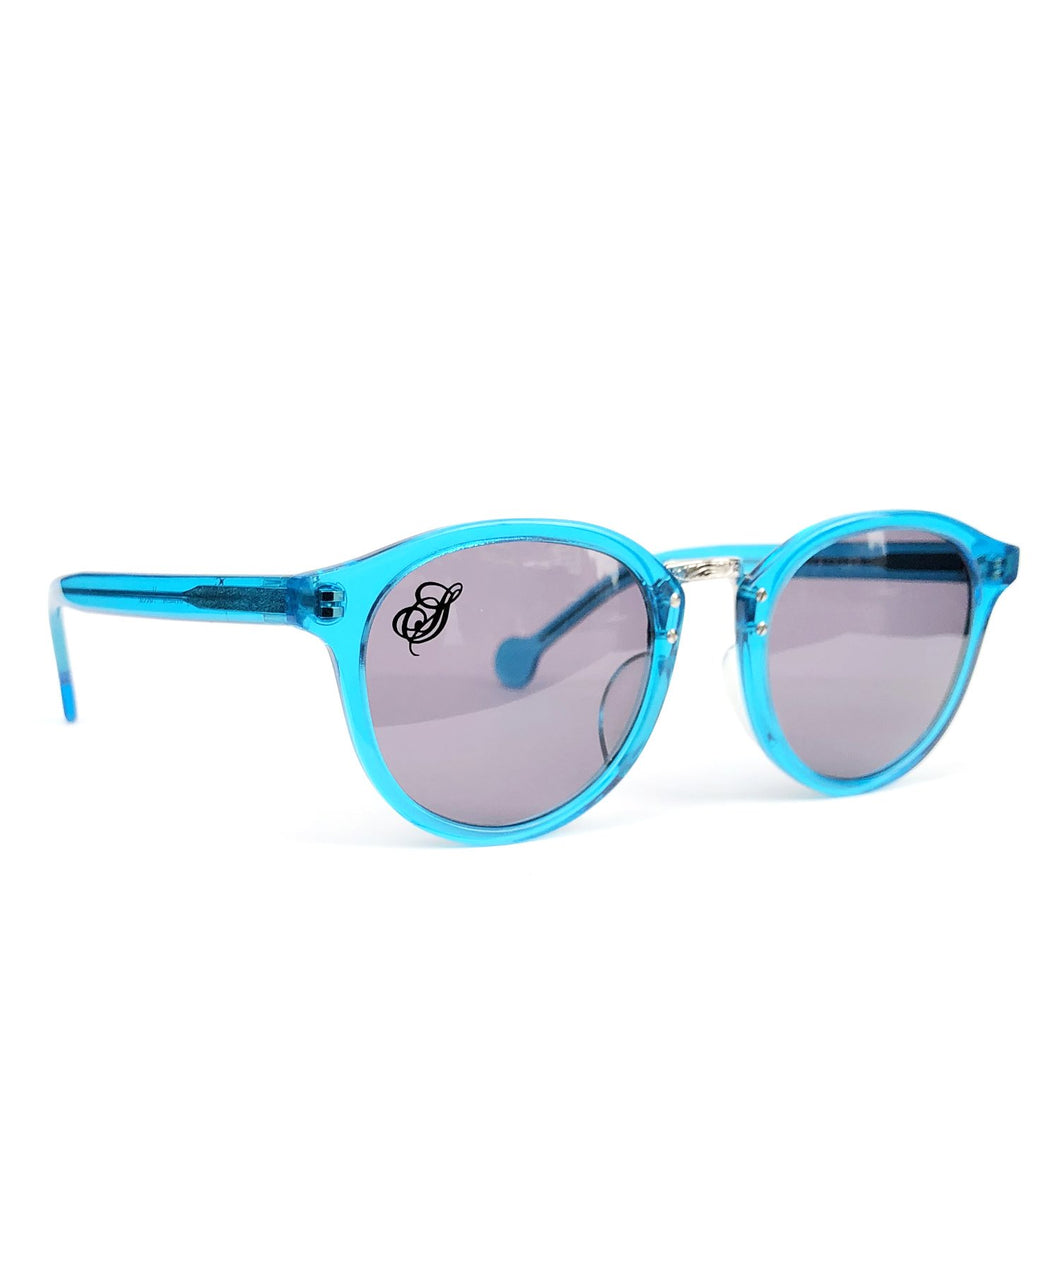 Session by STRUM Special Order Sunglasses / Clear Blue